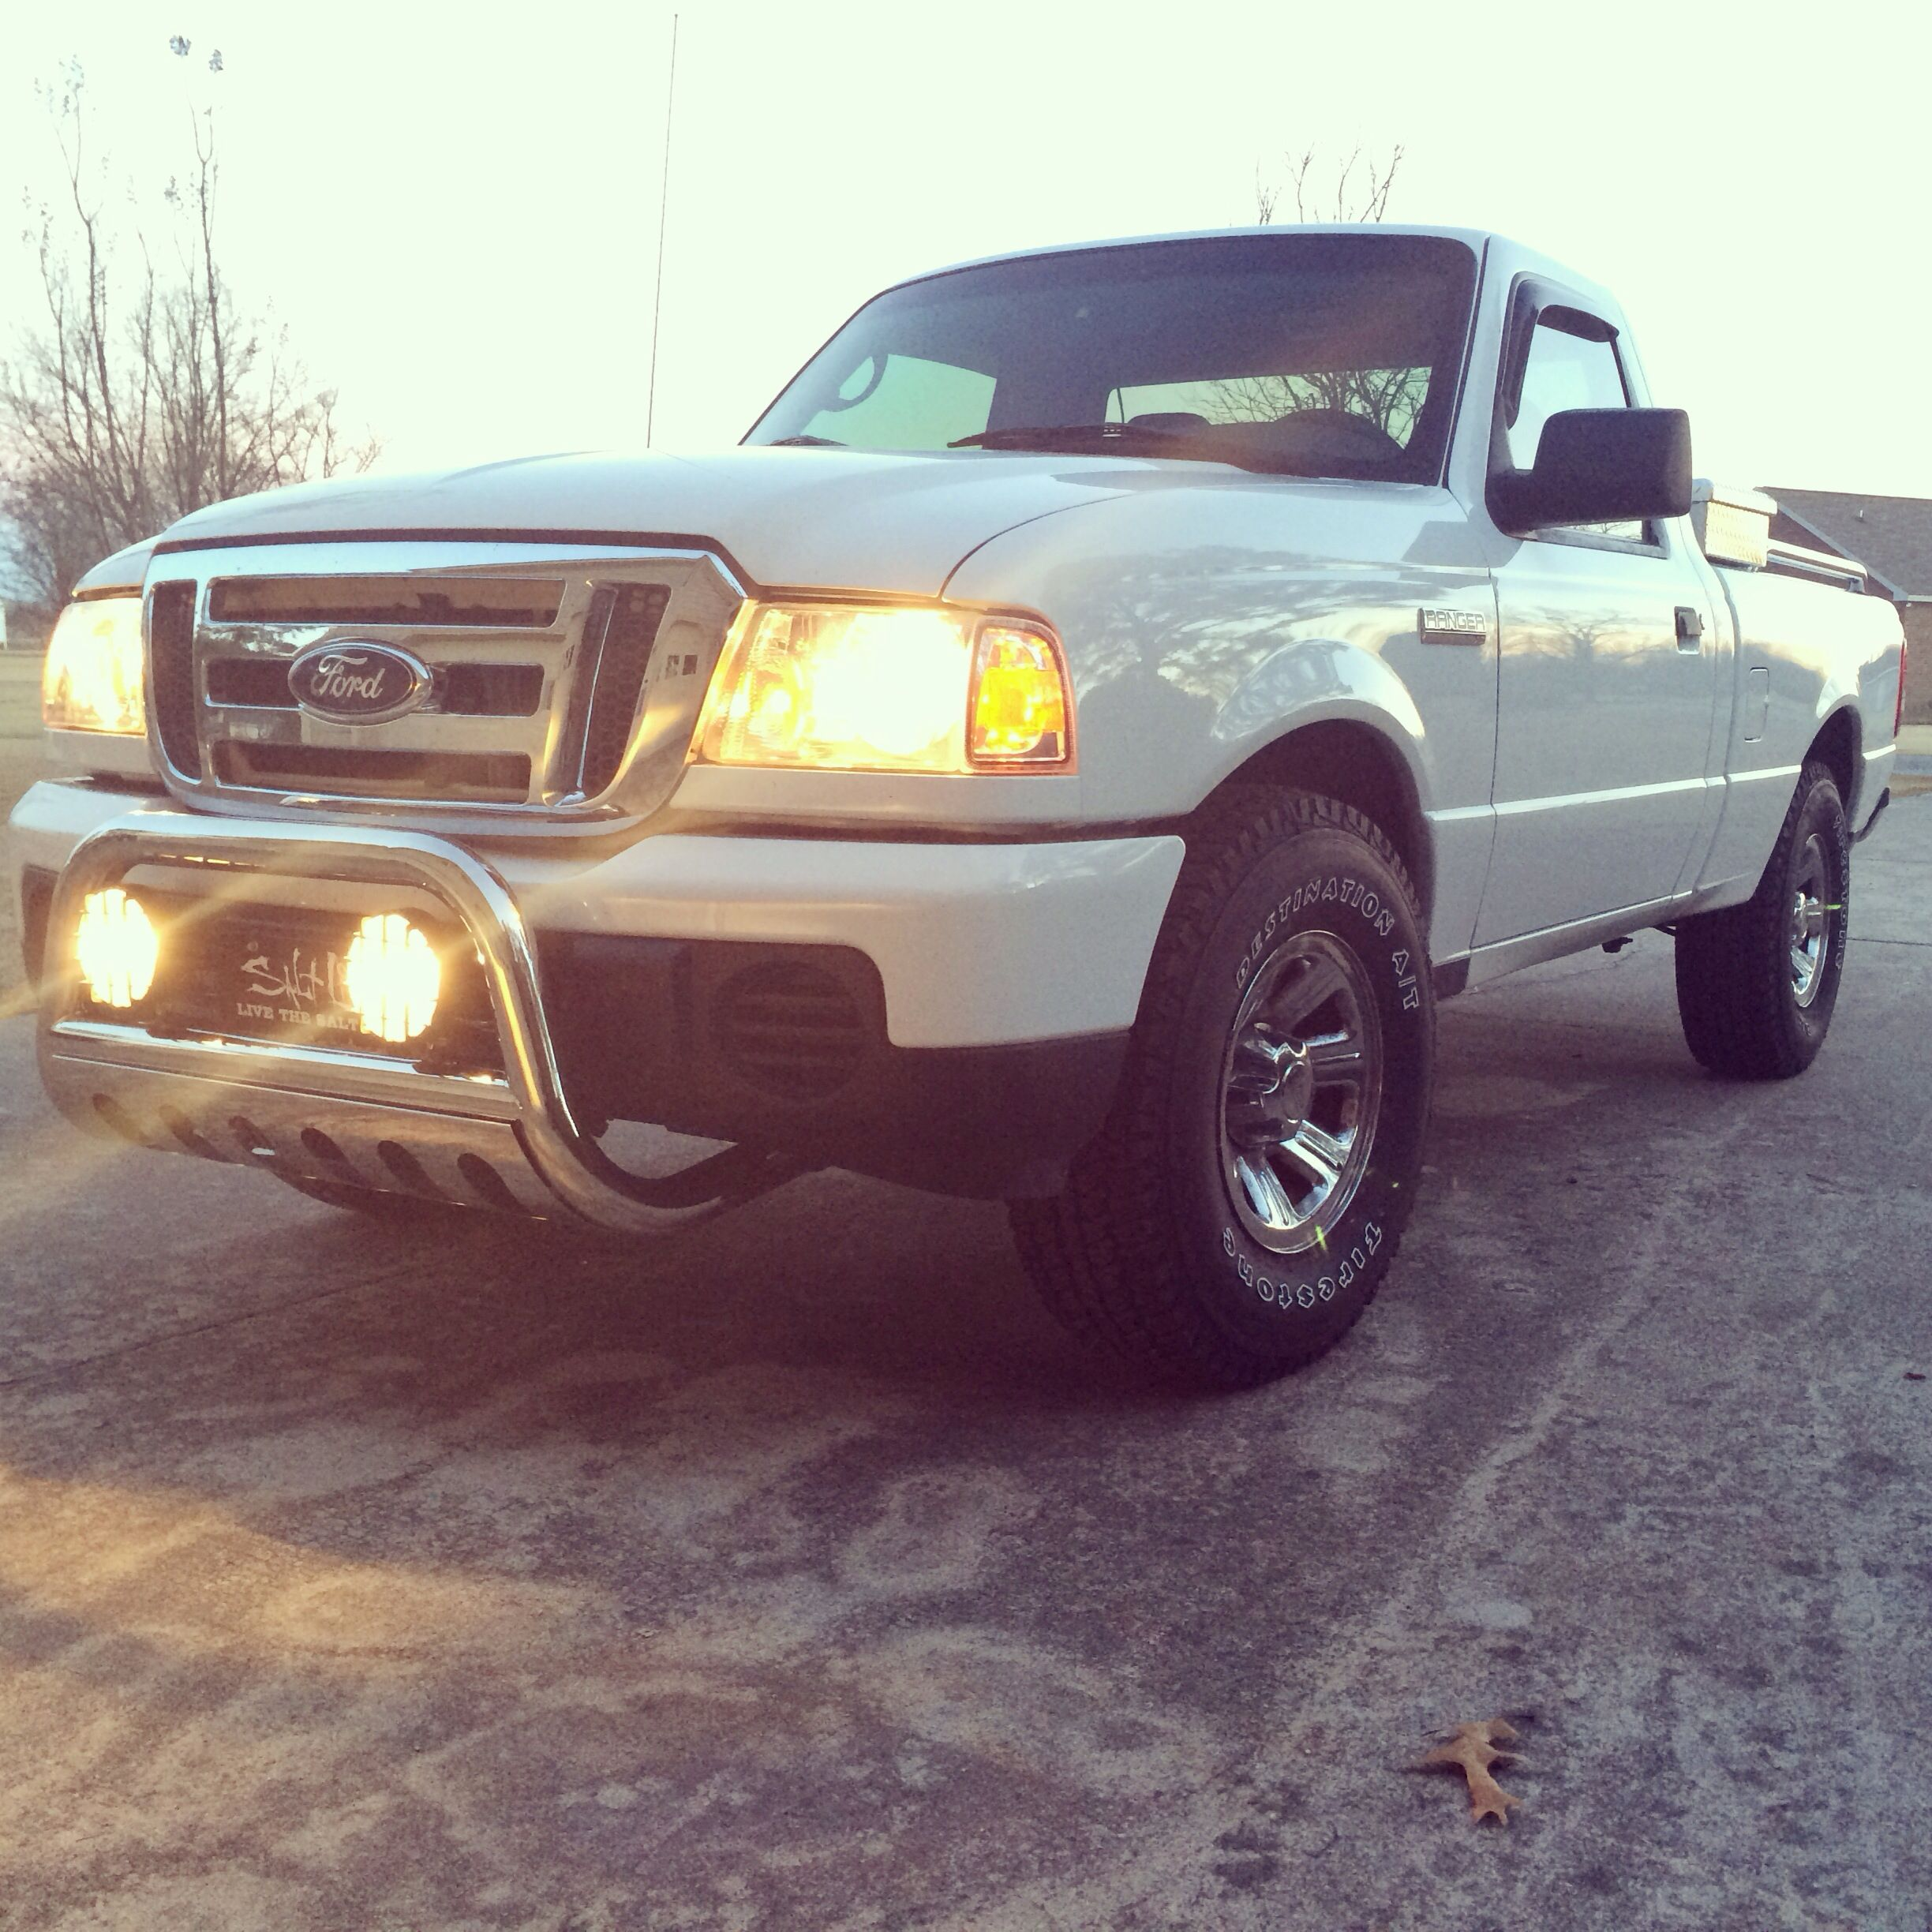 Ford ranger. No lift. 31' tires. Bullbar with lights. My